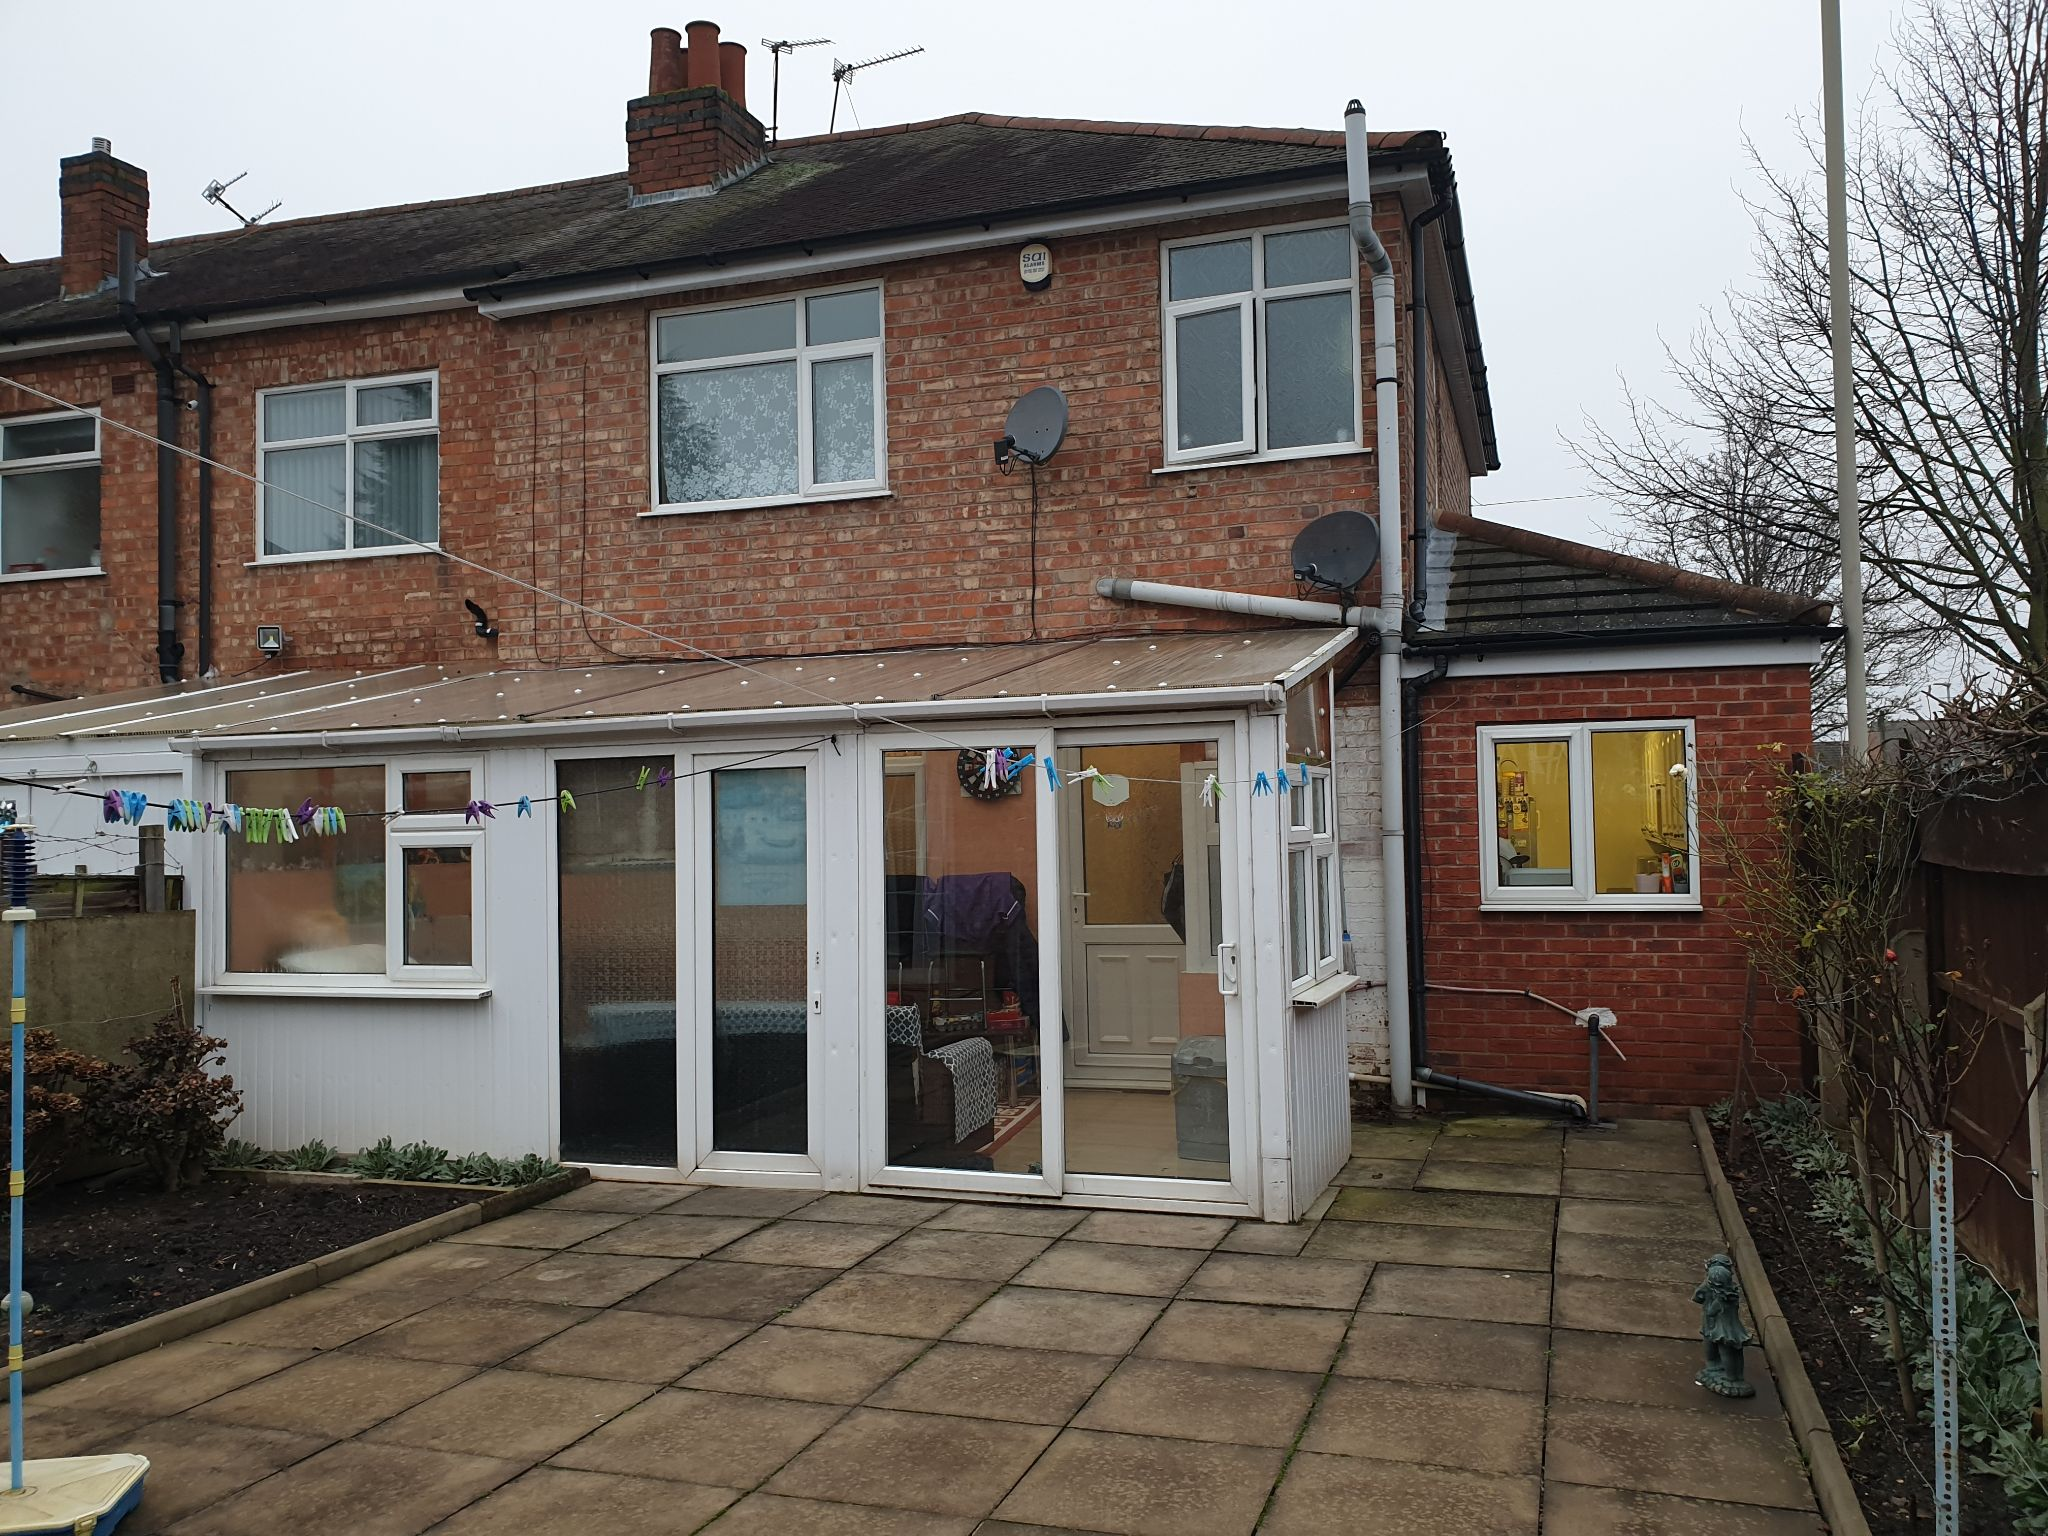 3 Bedroom Semi-detached House For Sale 35 Marston Road Image 14